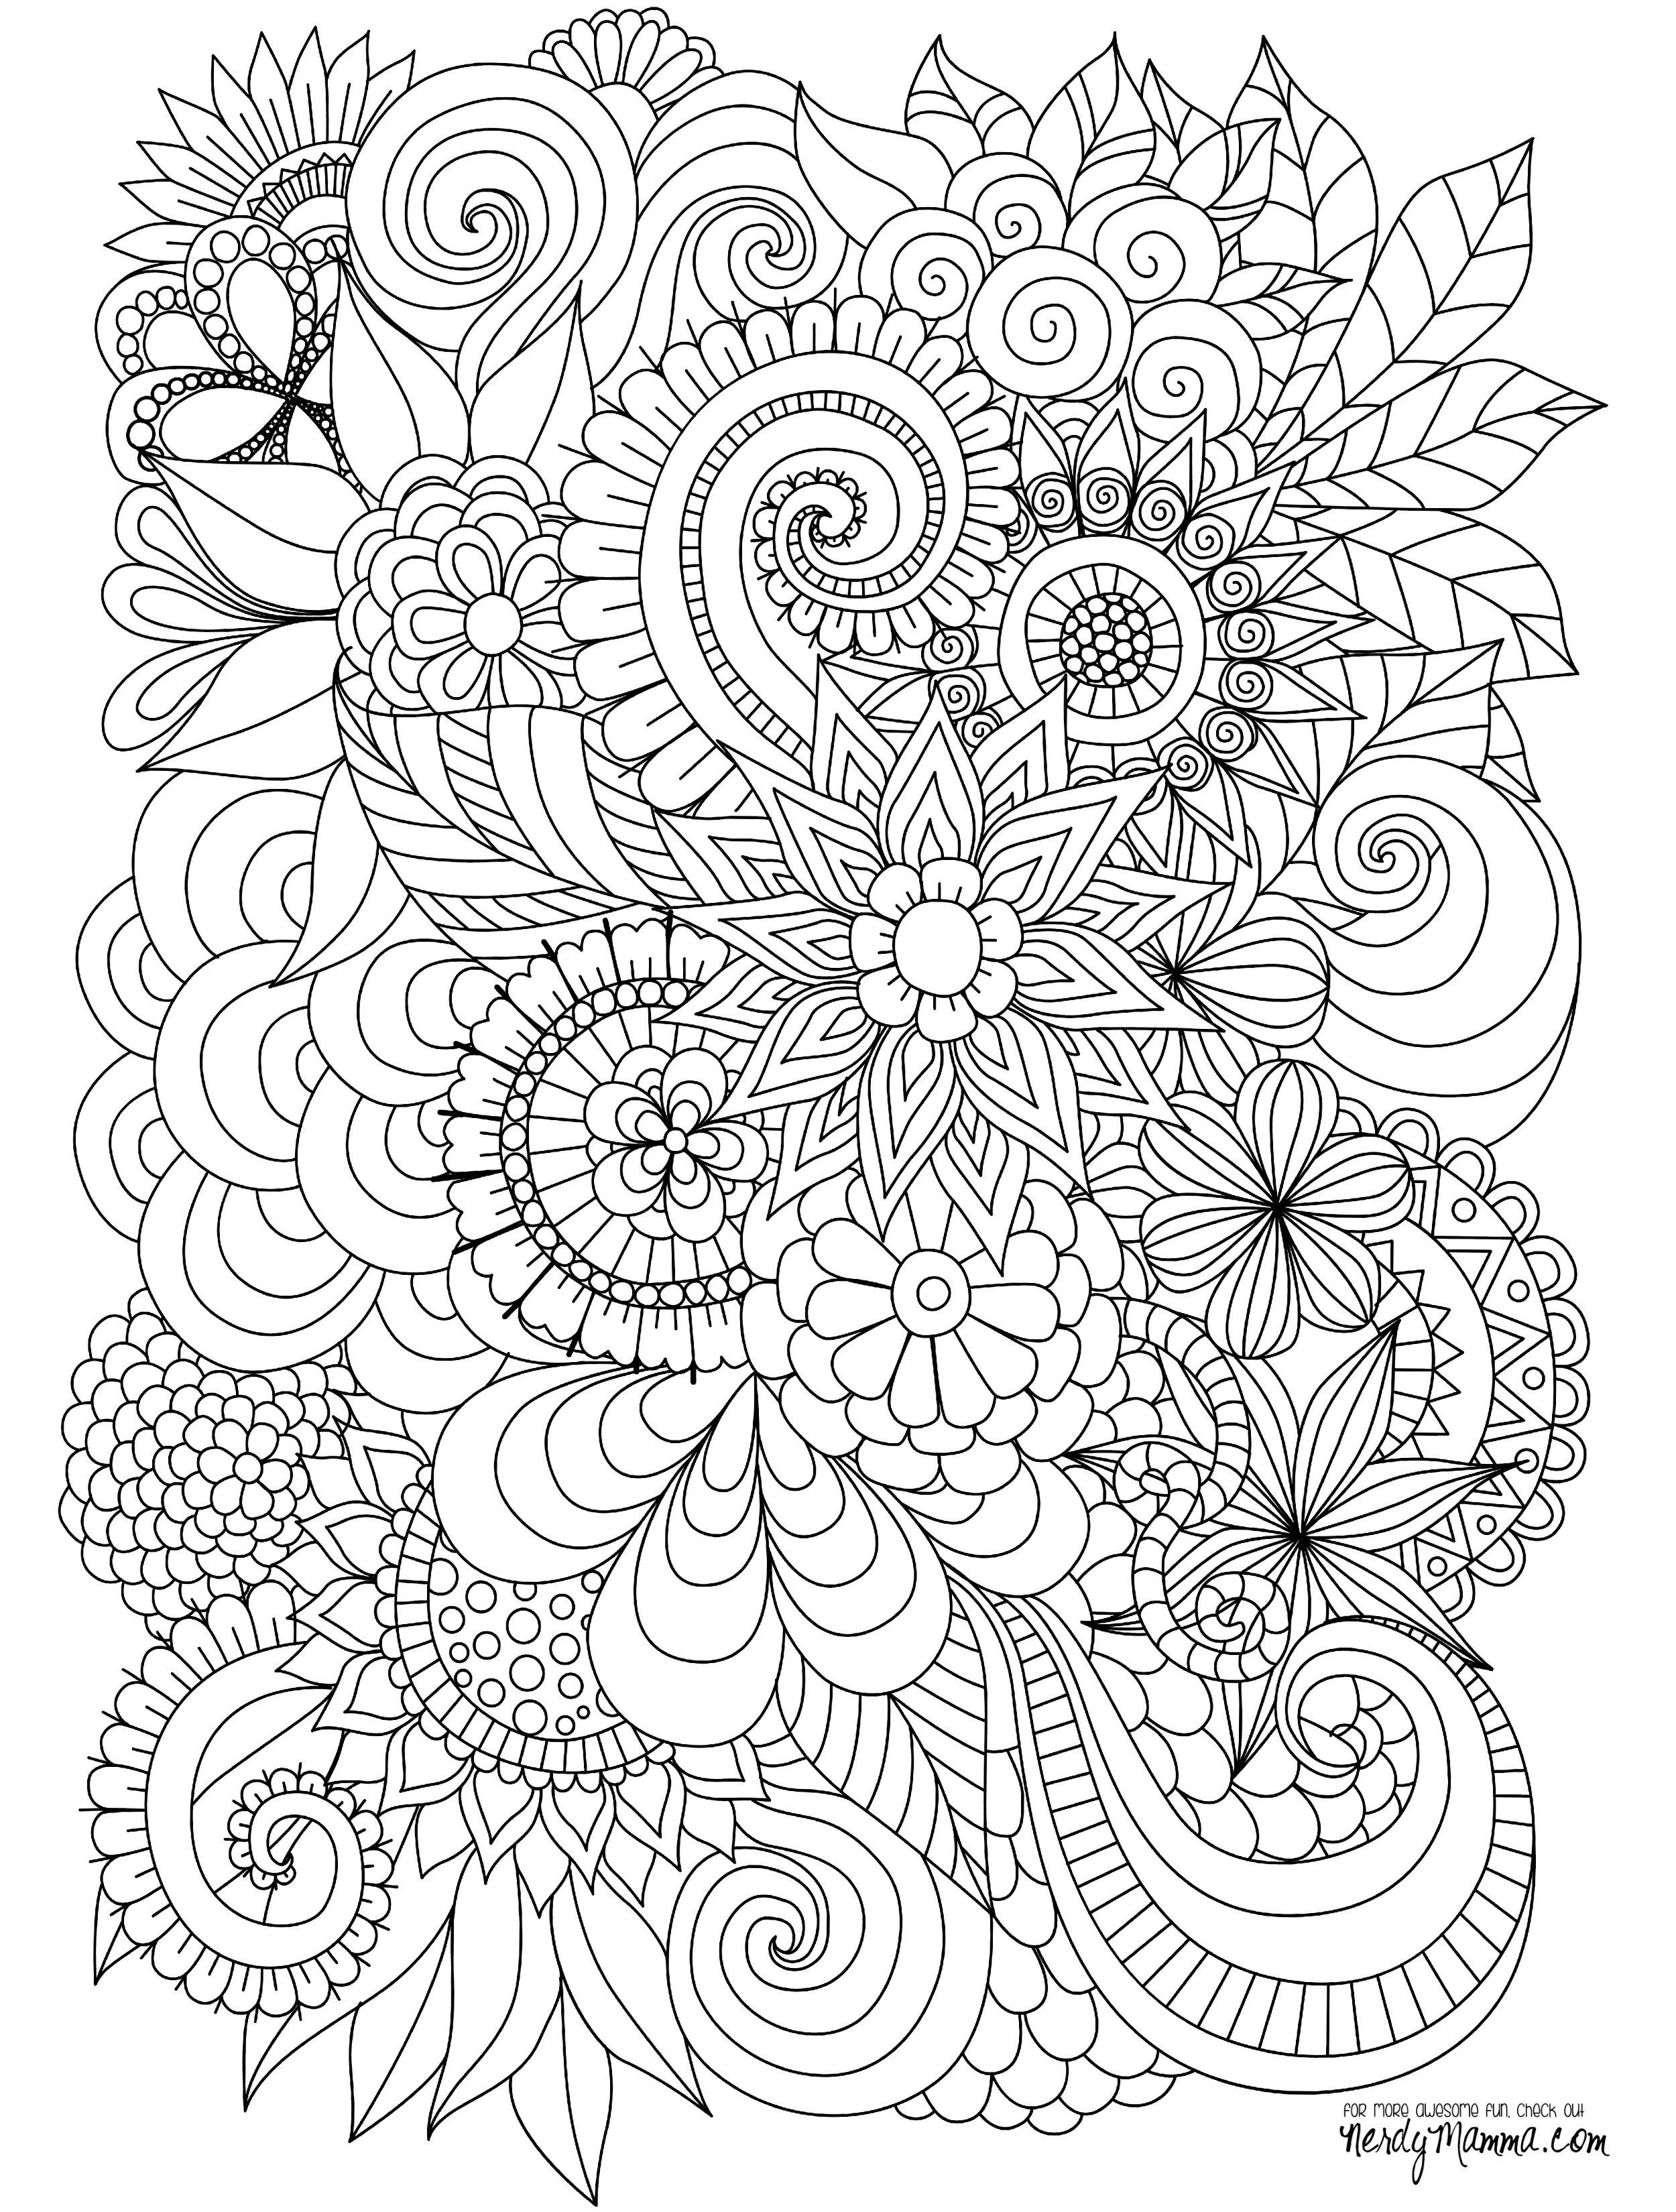 black and white coloring pages for adults Flowers Abstract Coloring pages colouring adult detailed advanced  black and white coloring pages for adults